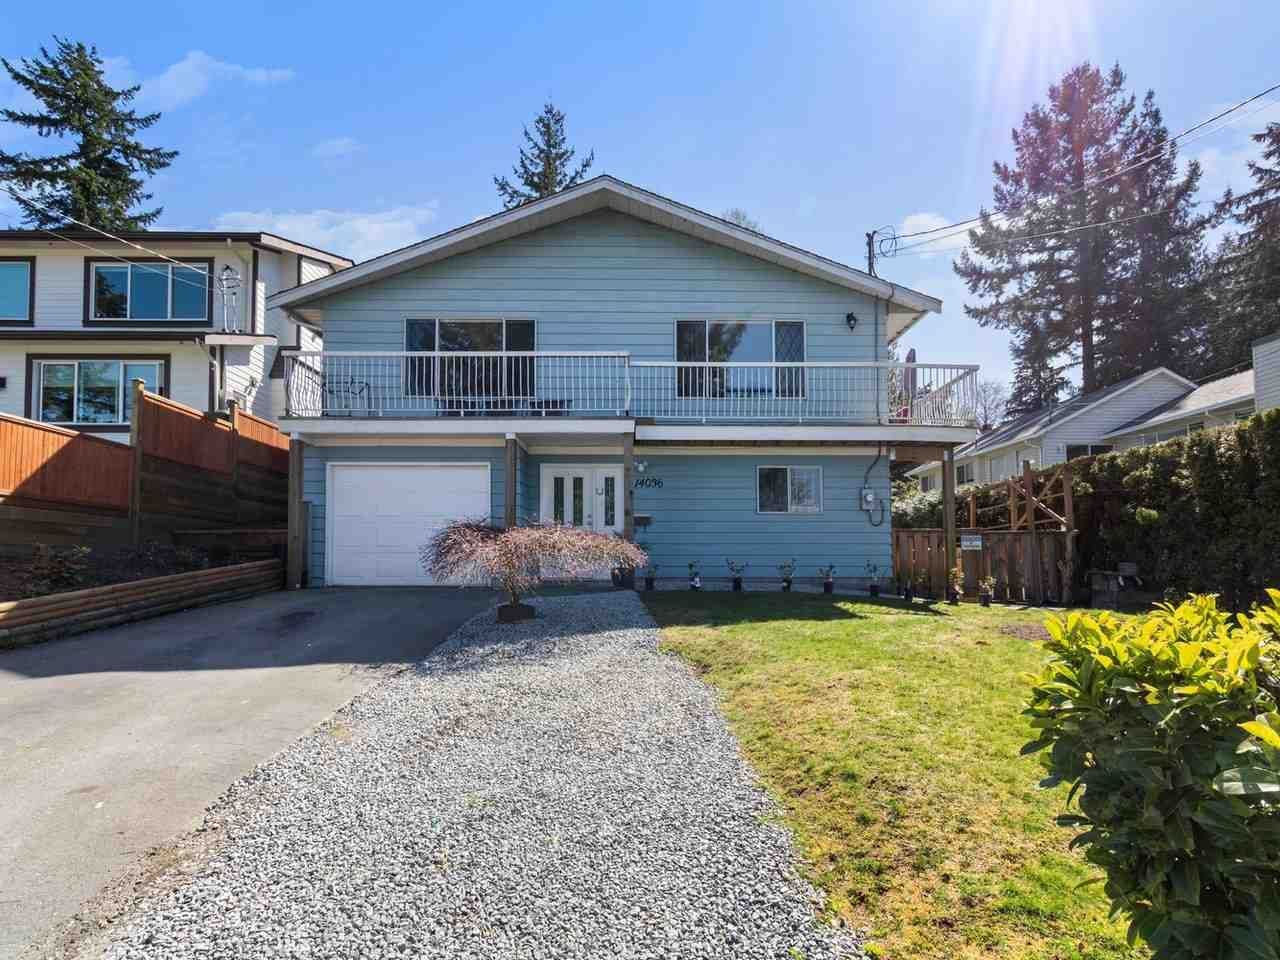 Main Photo: 14036 116 Avenue in Surrey: Bolivar Heights House for sale (North Surrey)  : MLS®# R2567591